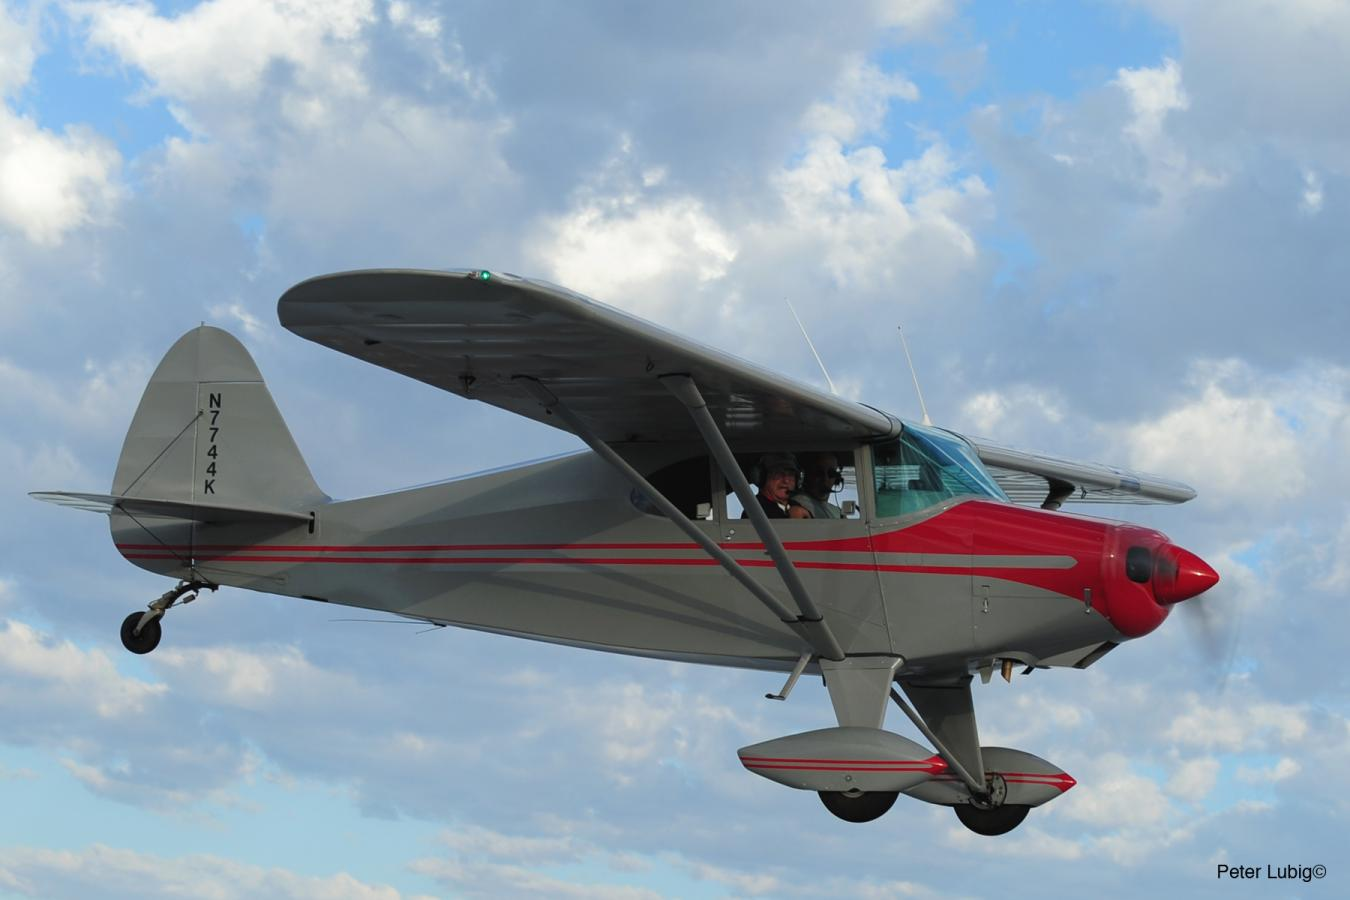 For Sale - Piper PA-22/20 Pacer